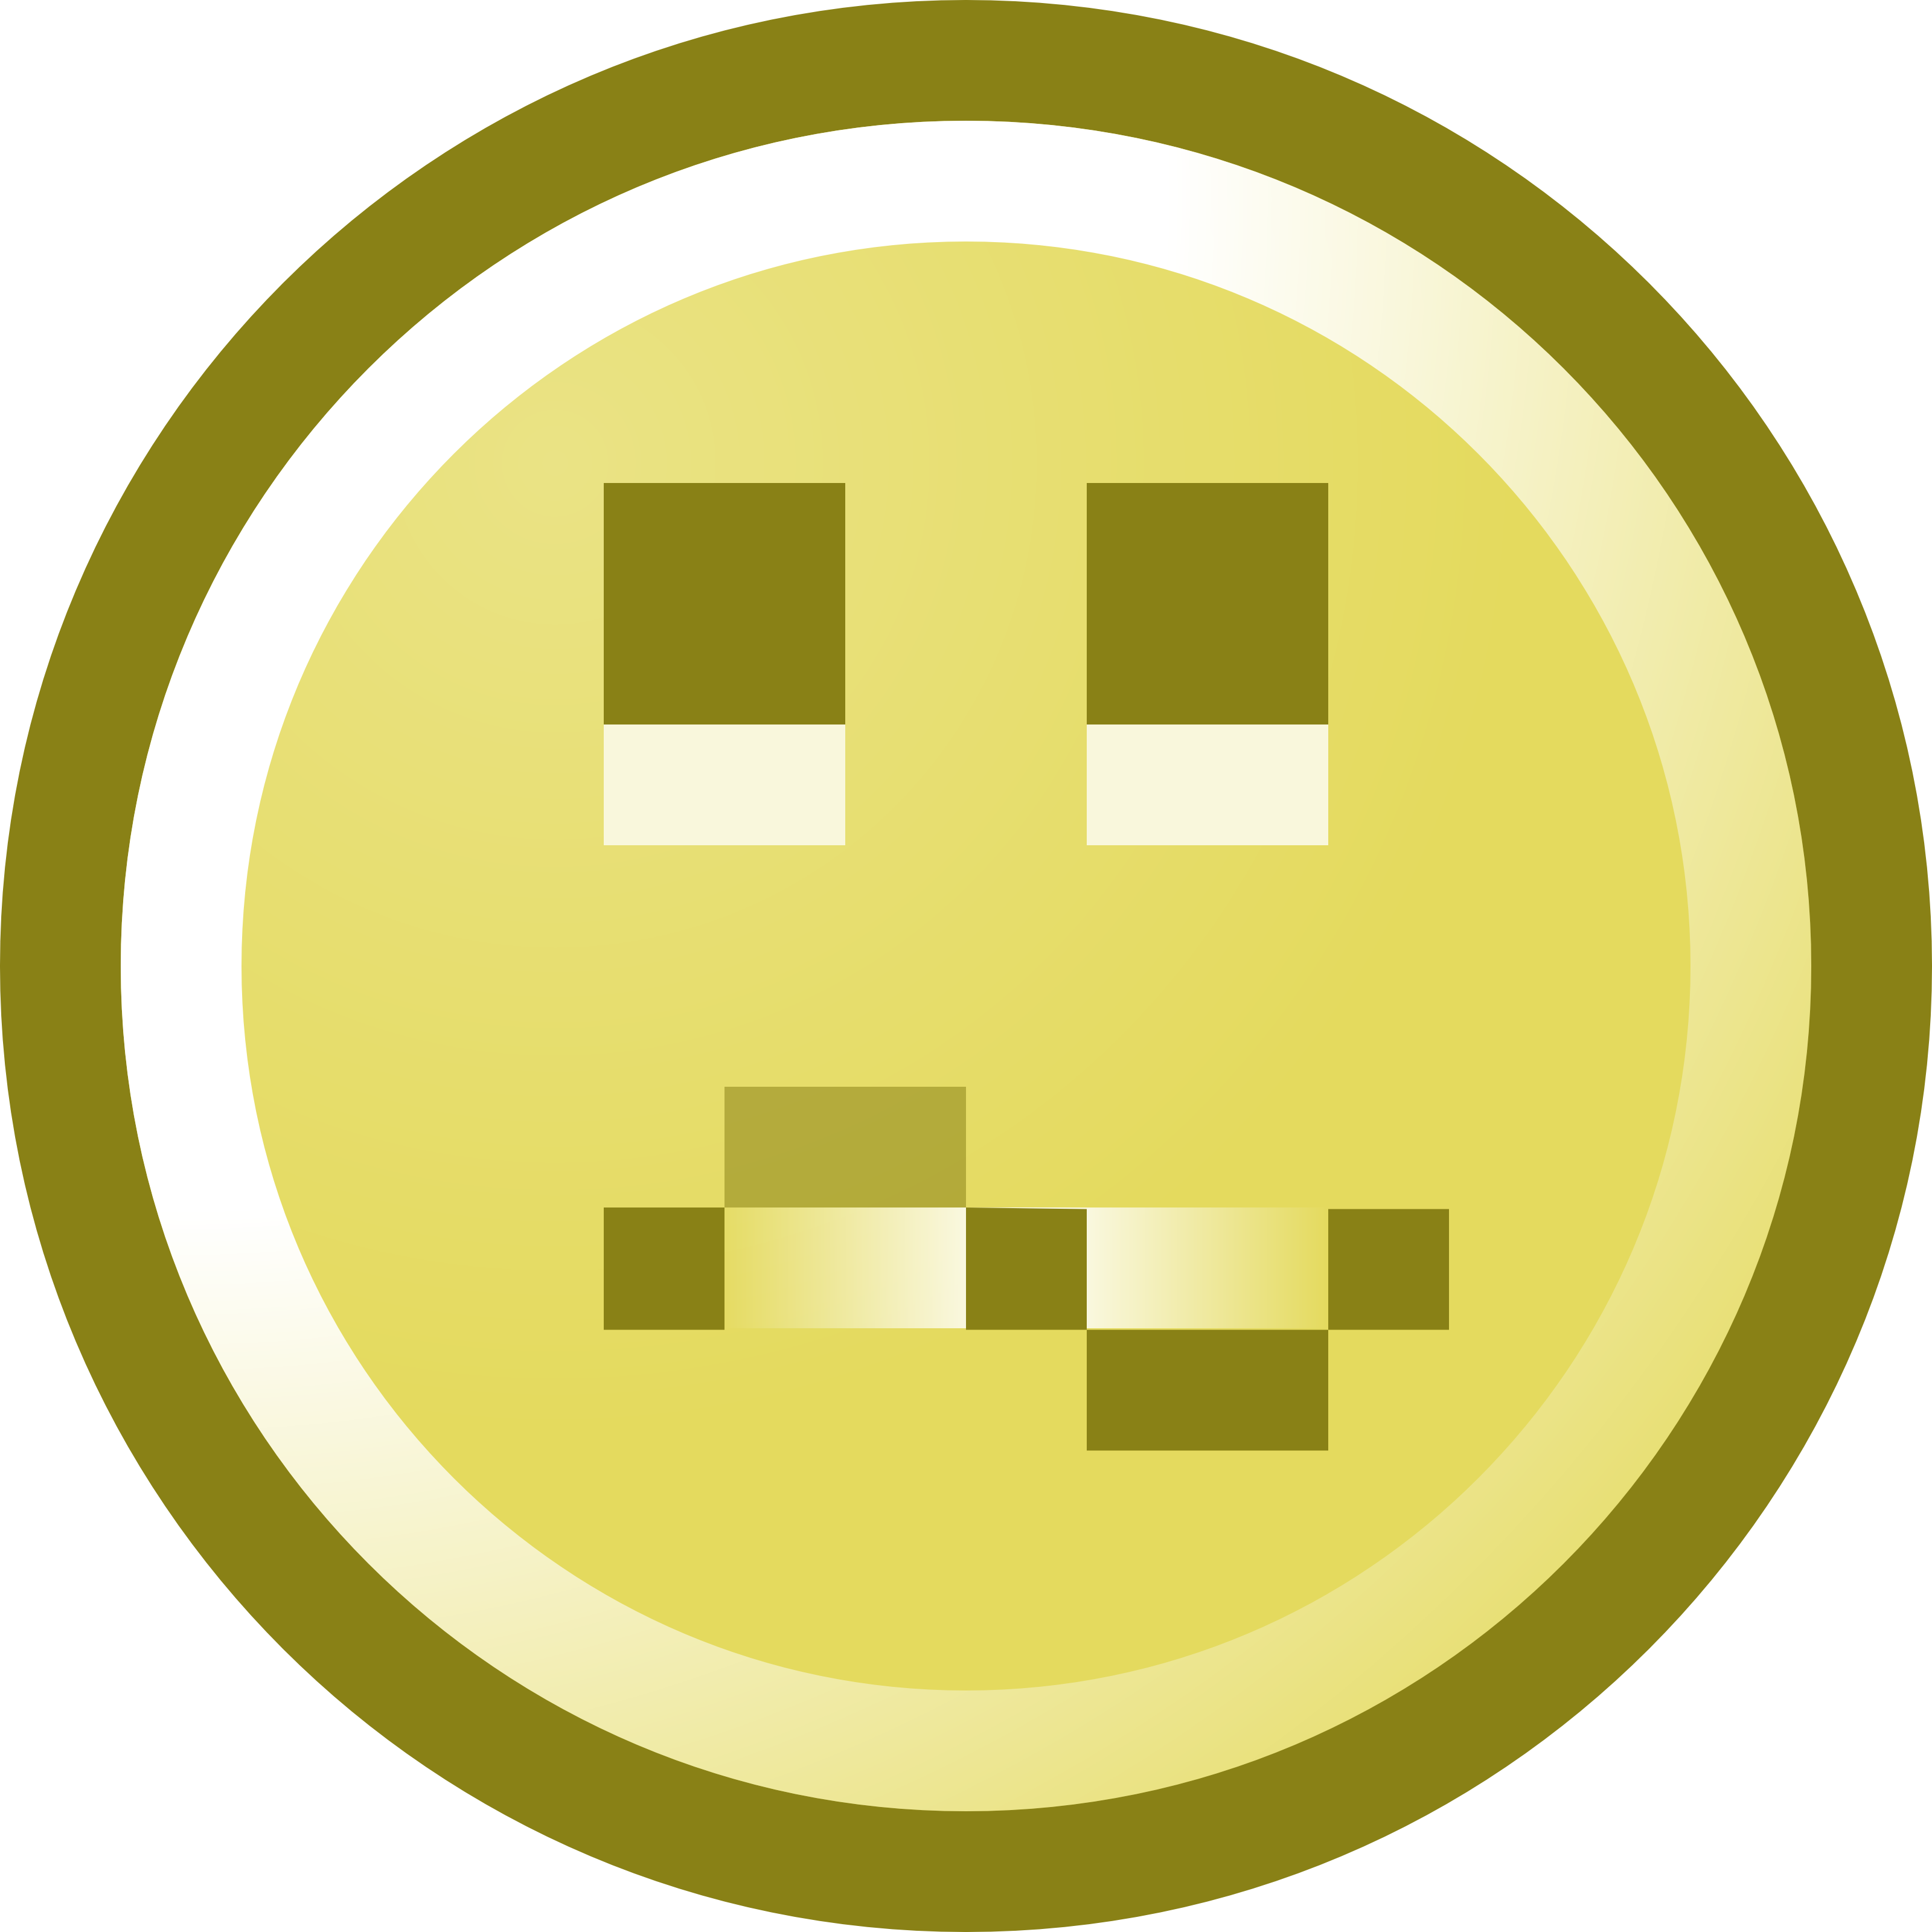 30-Free-Confused-Smiley-Face-Clip-Art-Il